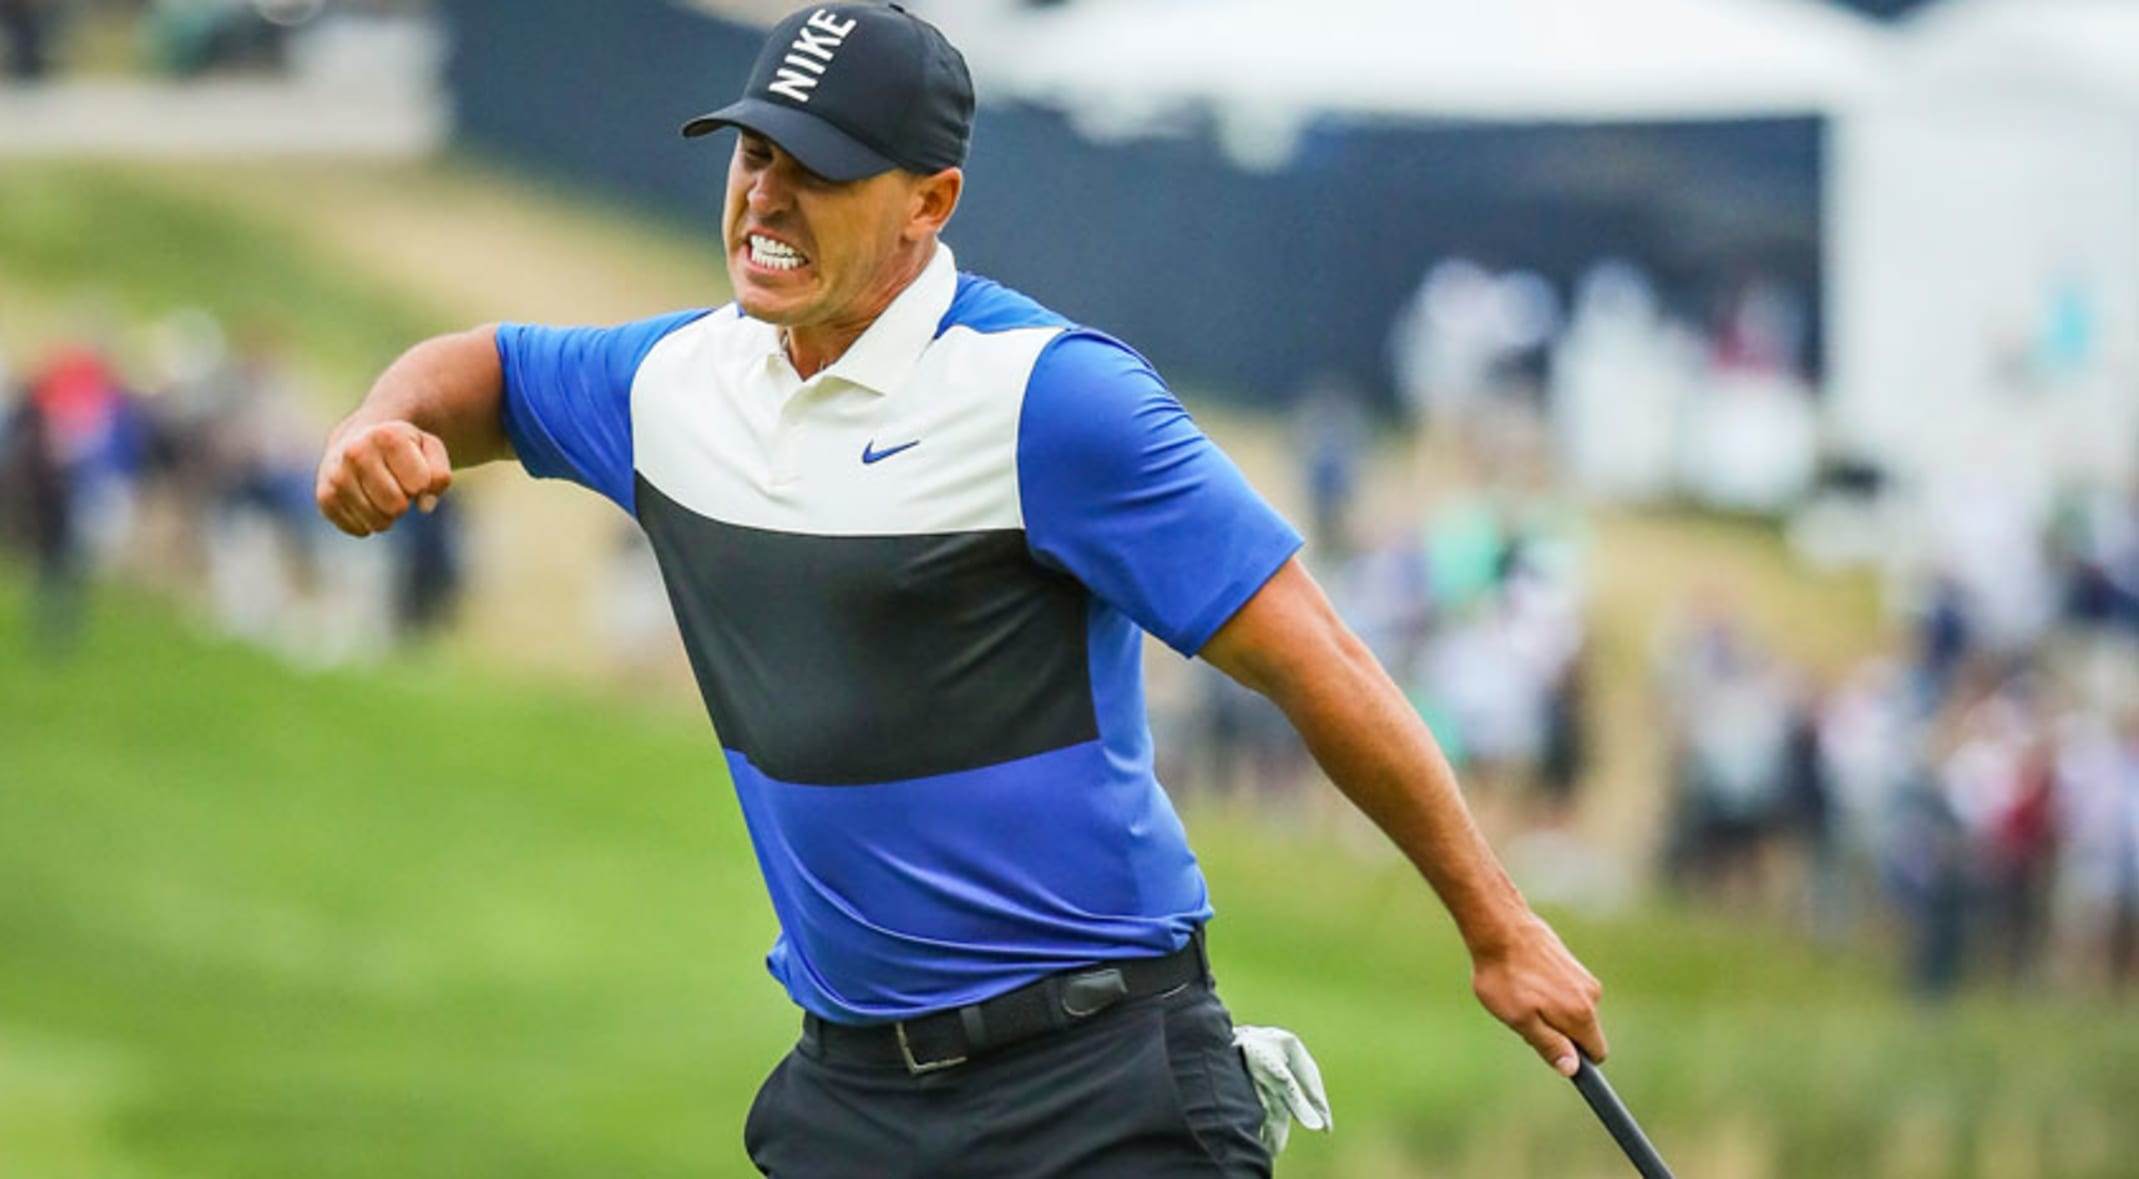 431ece59e Is there any end in sight for Brooks Koepka?